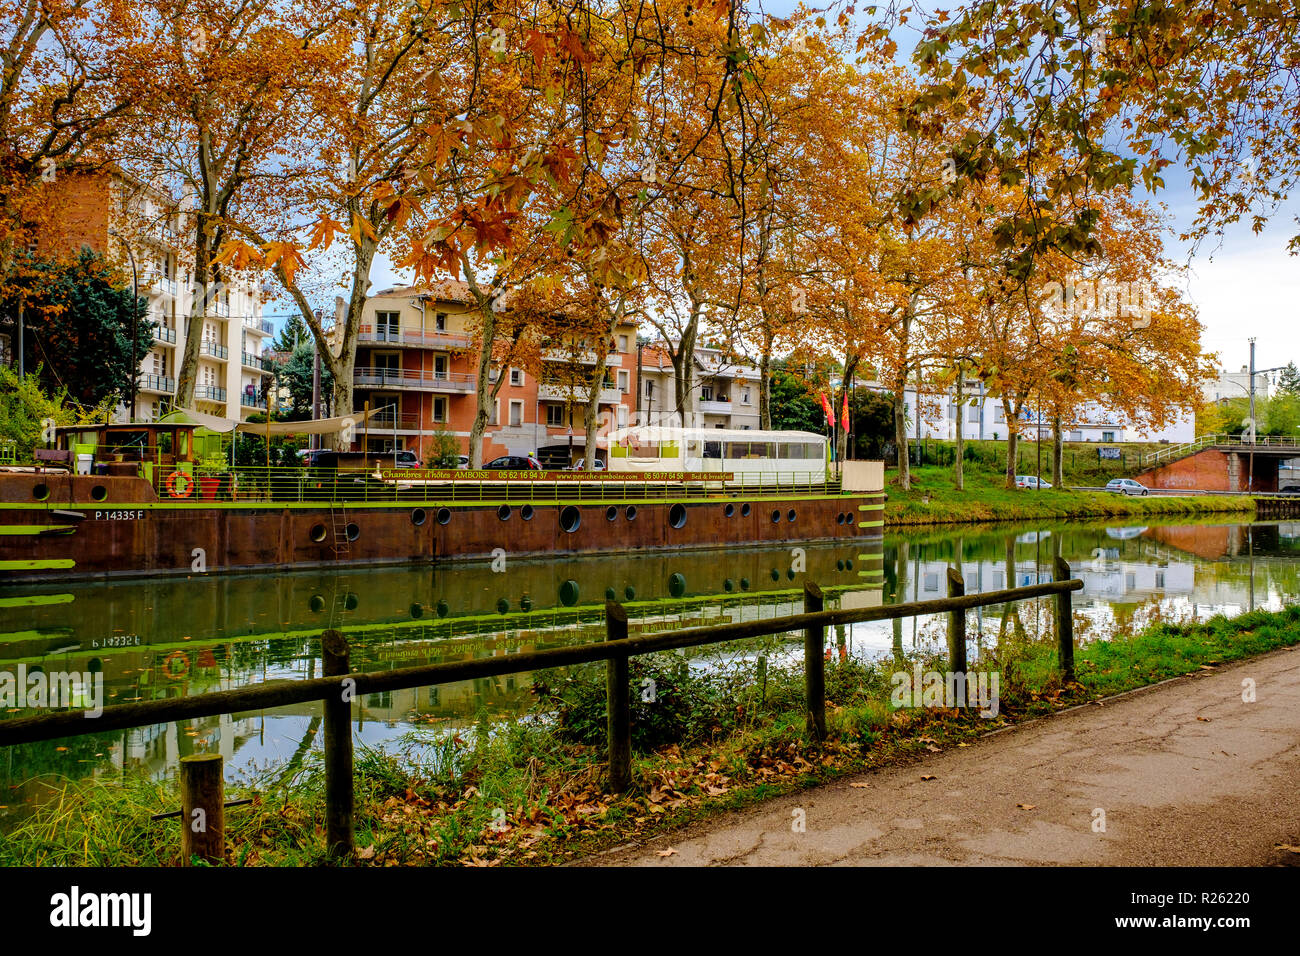 Pleasure craft on the Canal du Midi, Toulouse, France - Stock Image